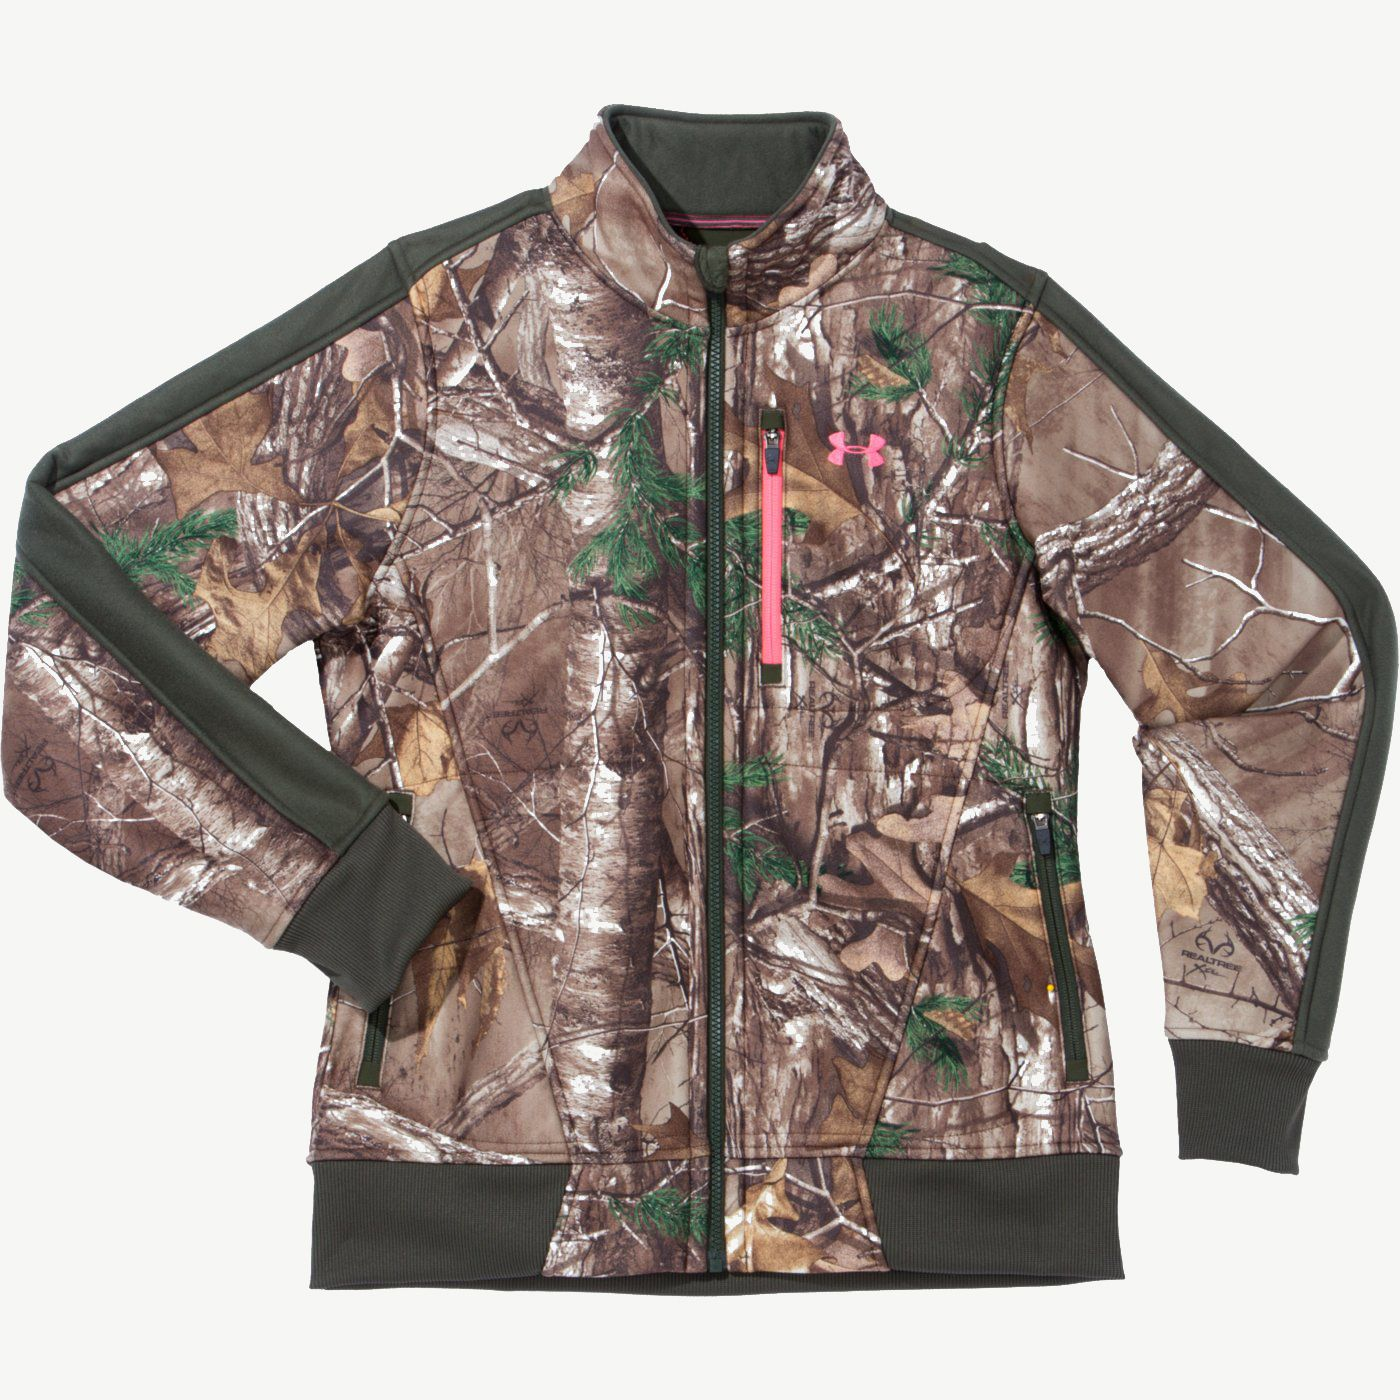 under armor duck hunting jacket